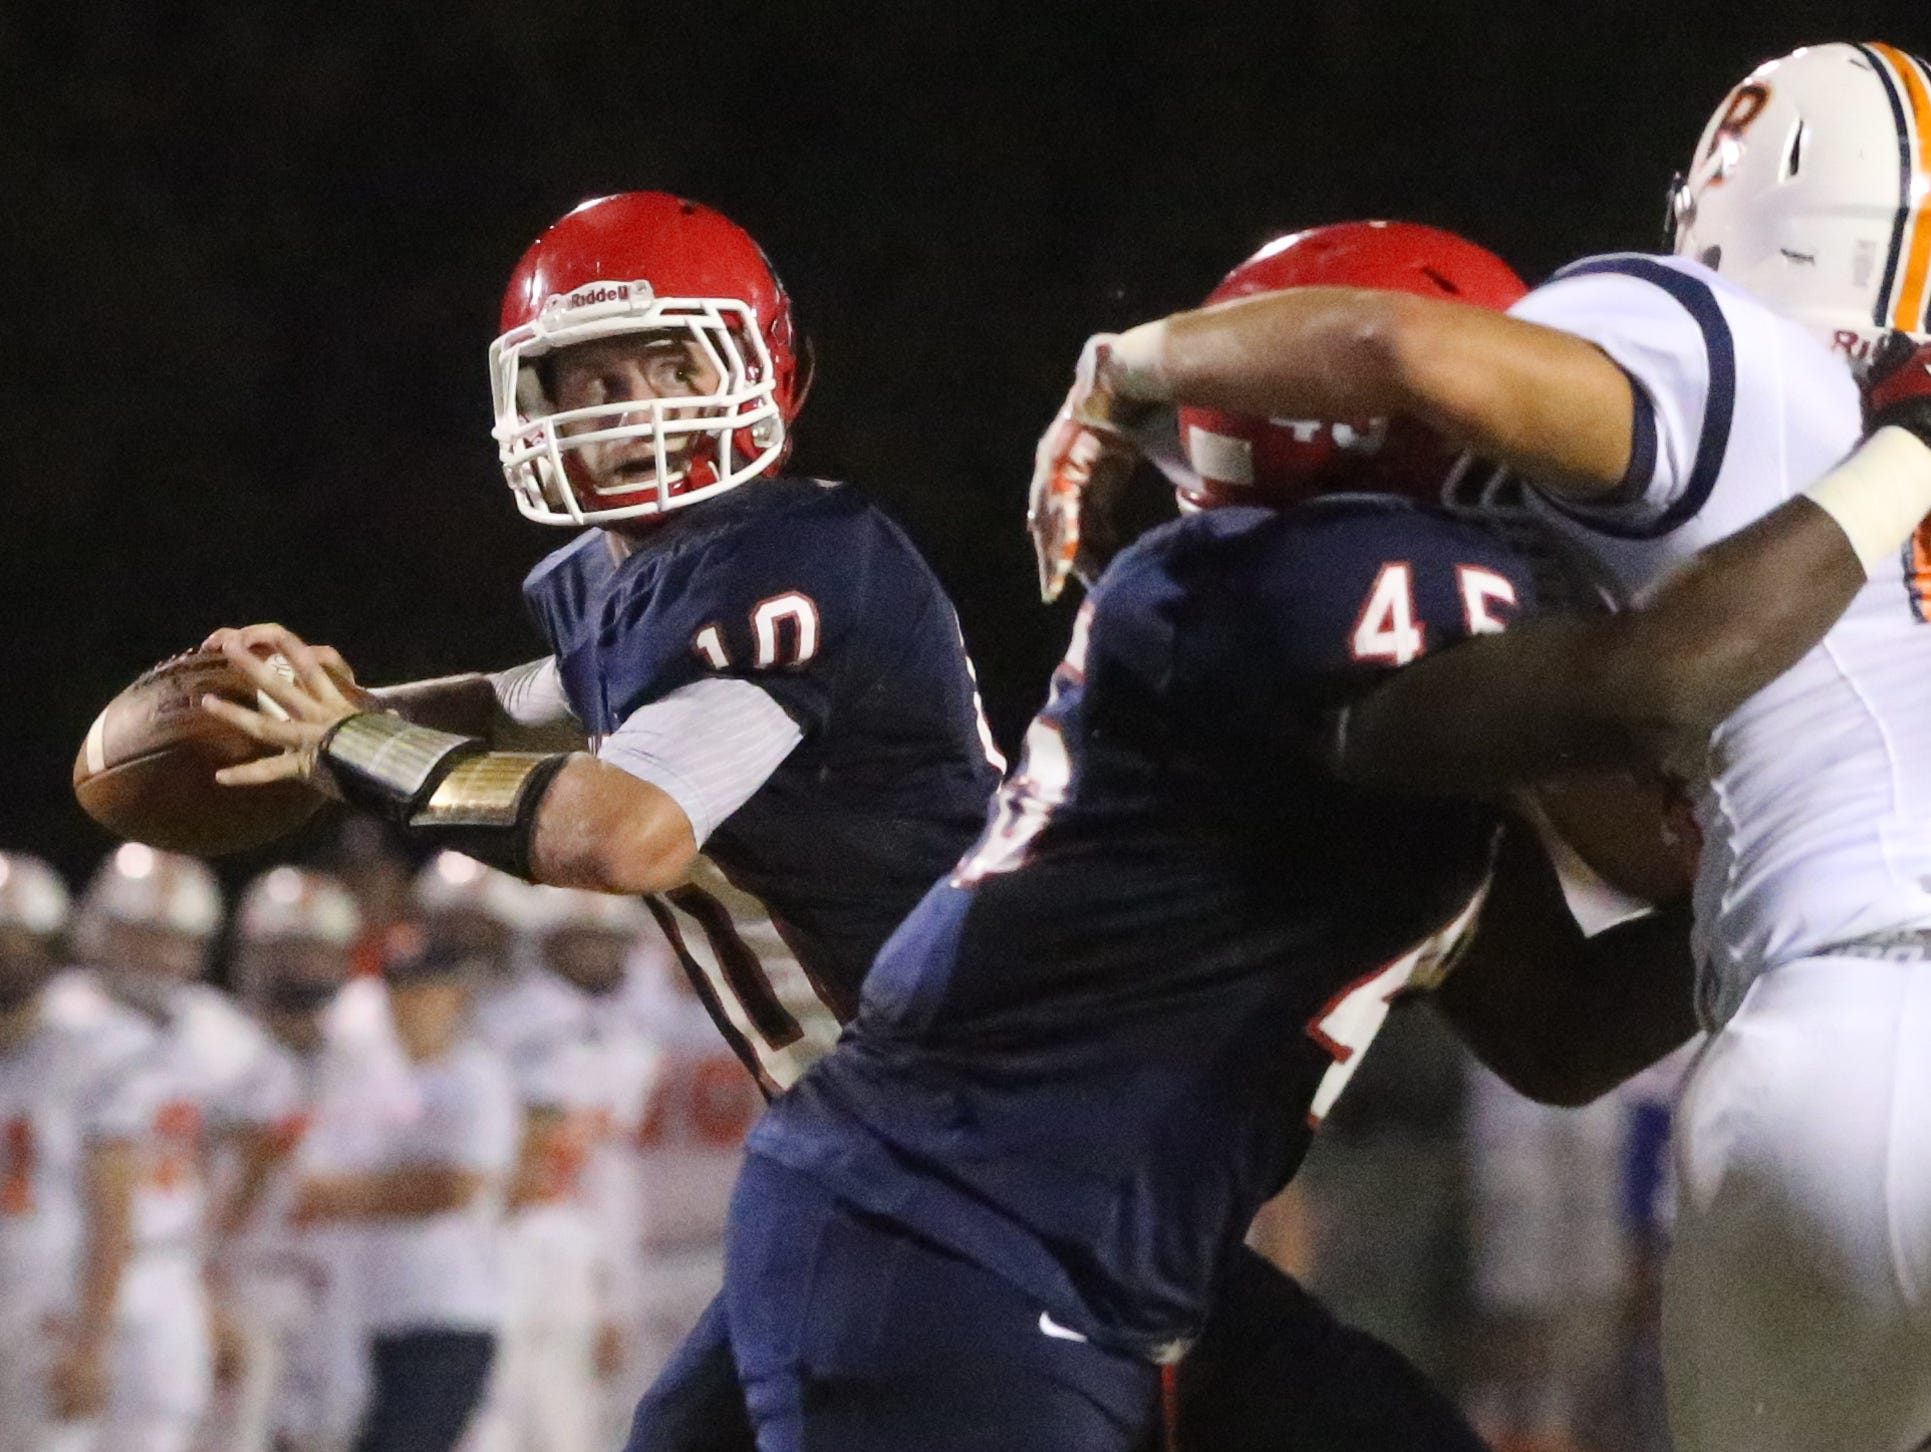 Oakland quarterback Brendan Matthews throws a pass during the Patriots 21-7 win on Friday night.